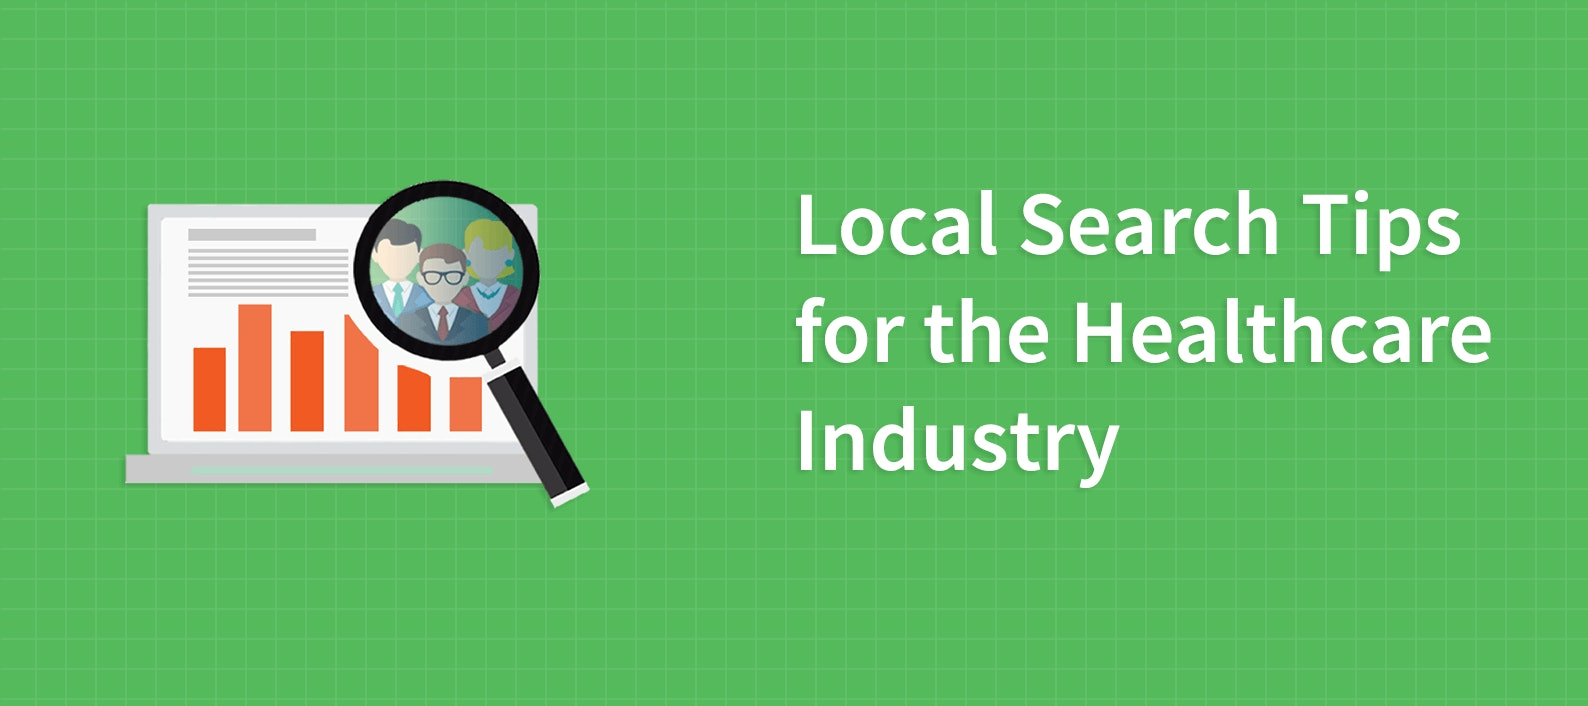 Local Search Tips for the Healthcare Industry